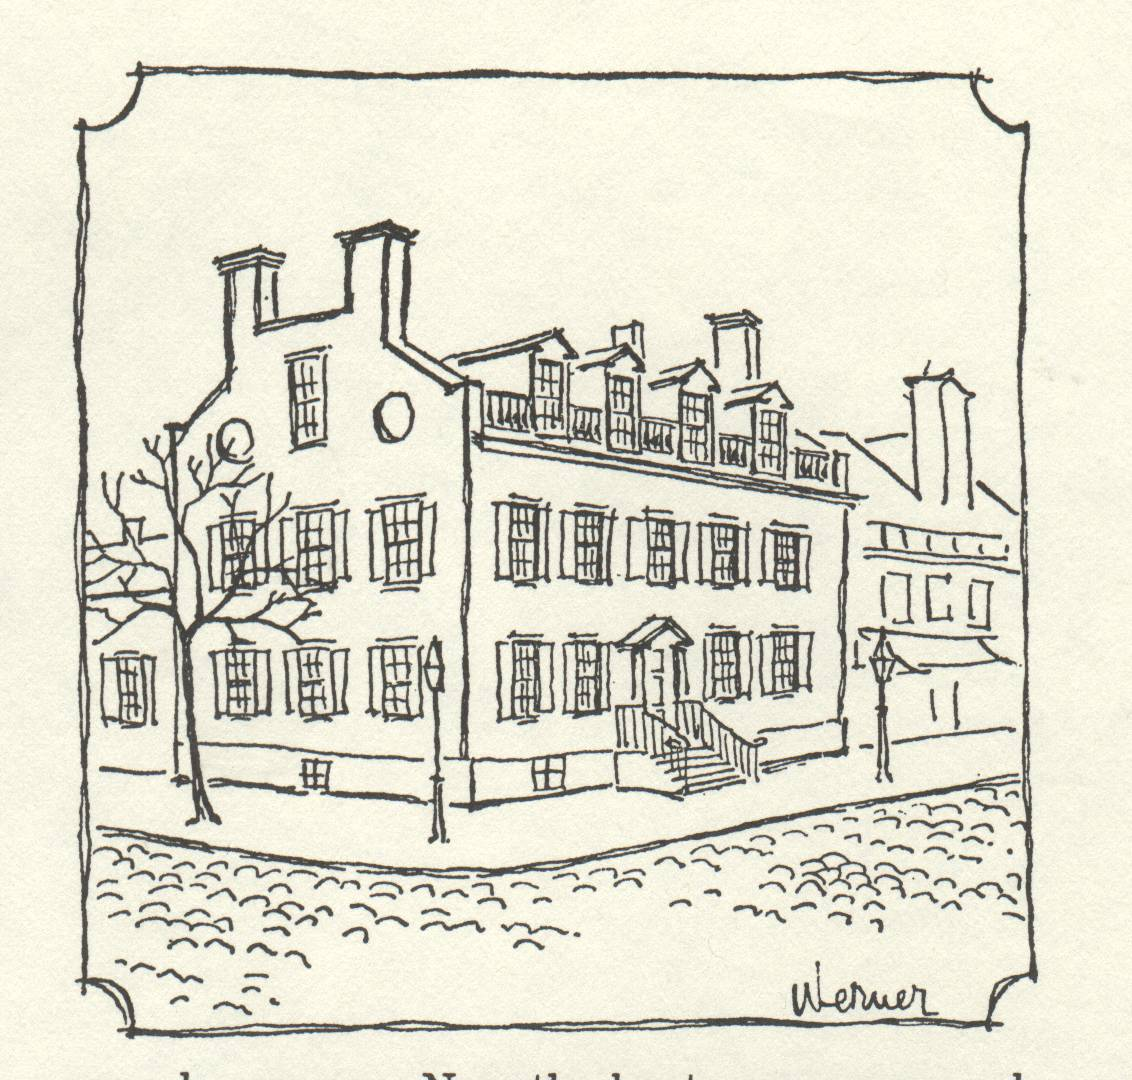 drawing of large building with many windows